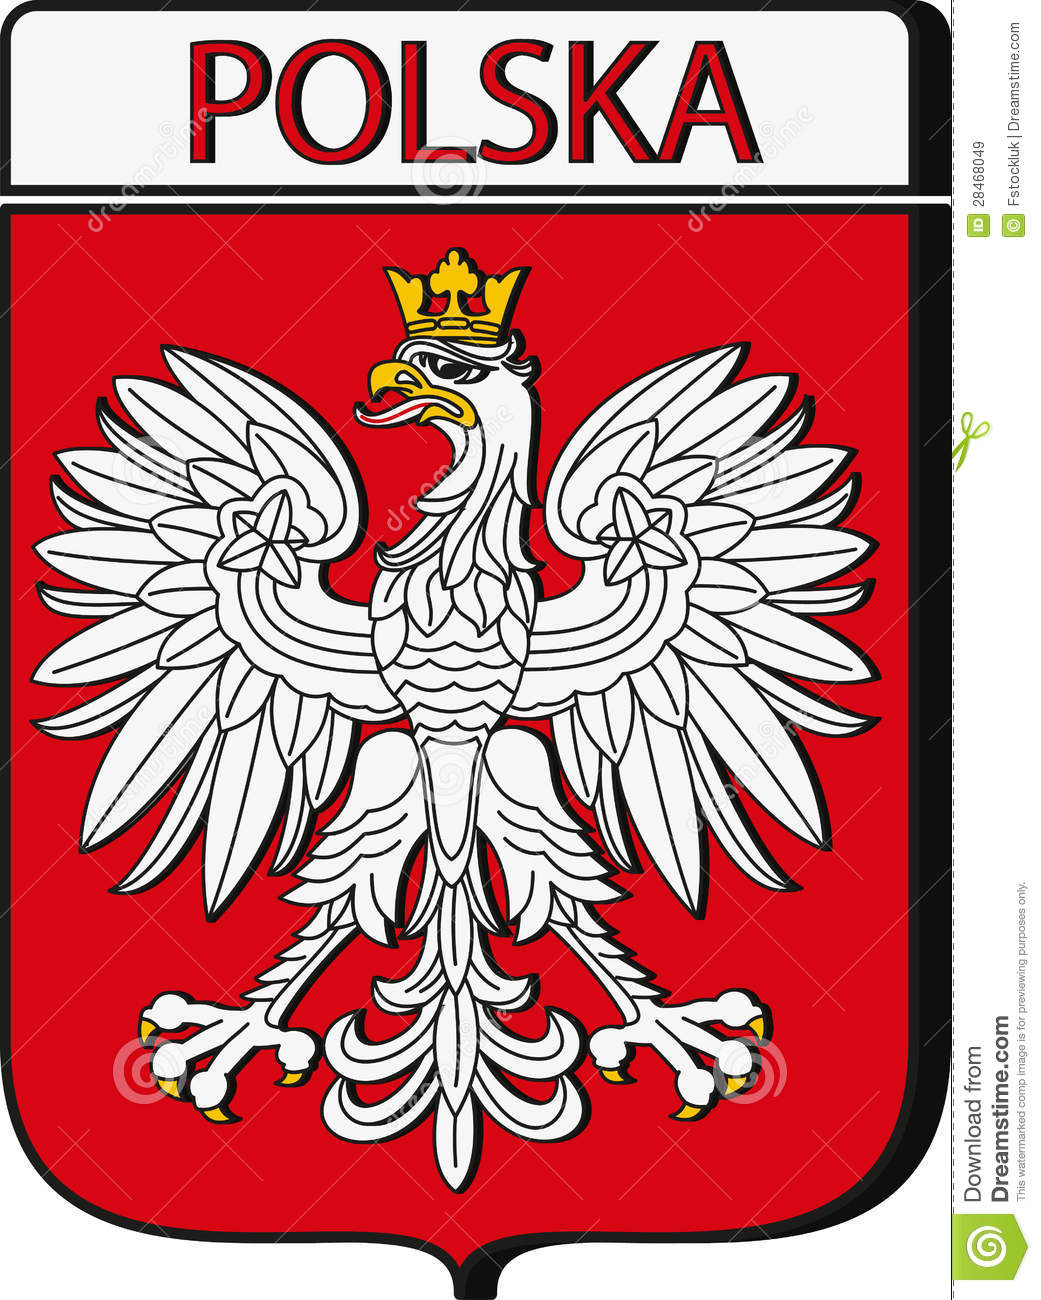 Polish Crest Poland Emblem Royalty Free Stock Images  Image 28468049